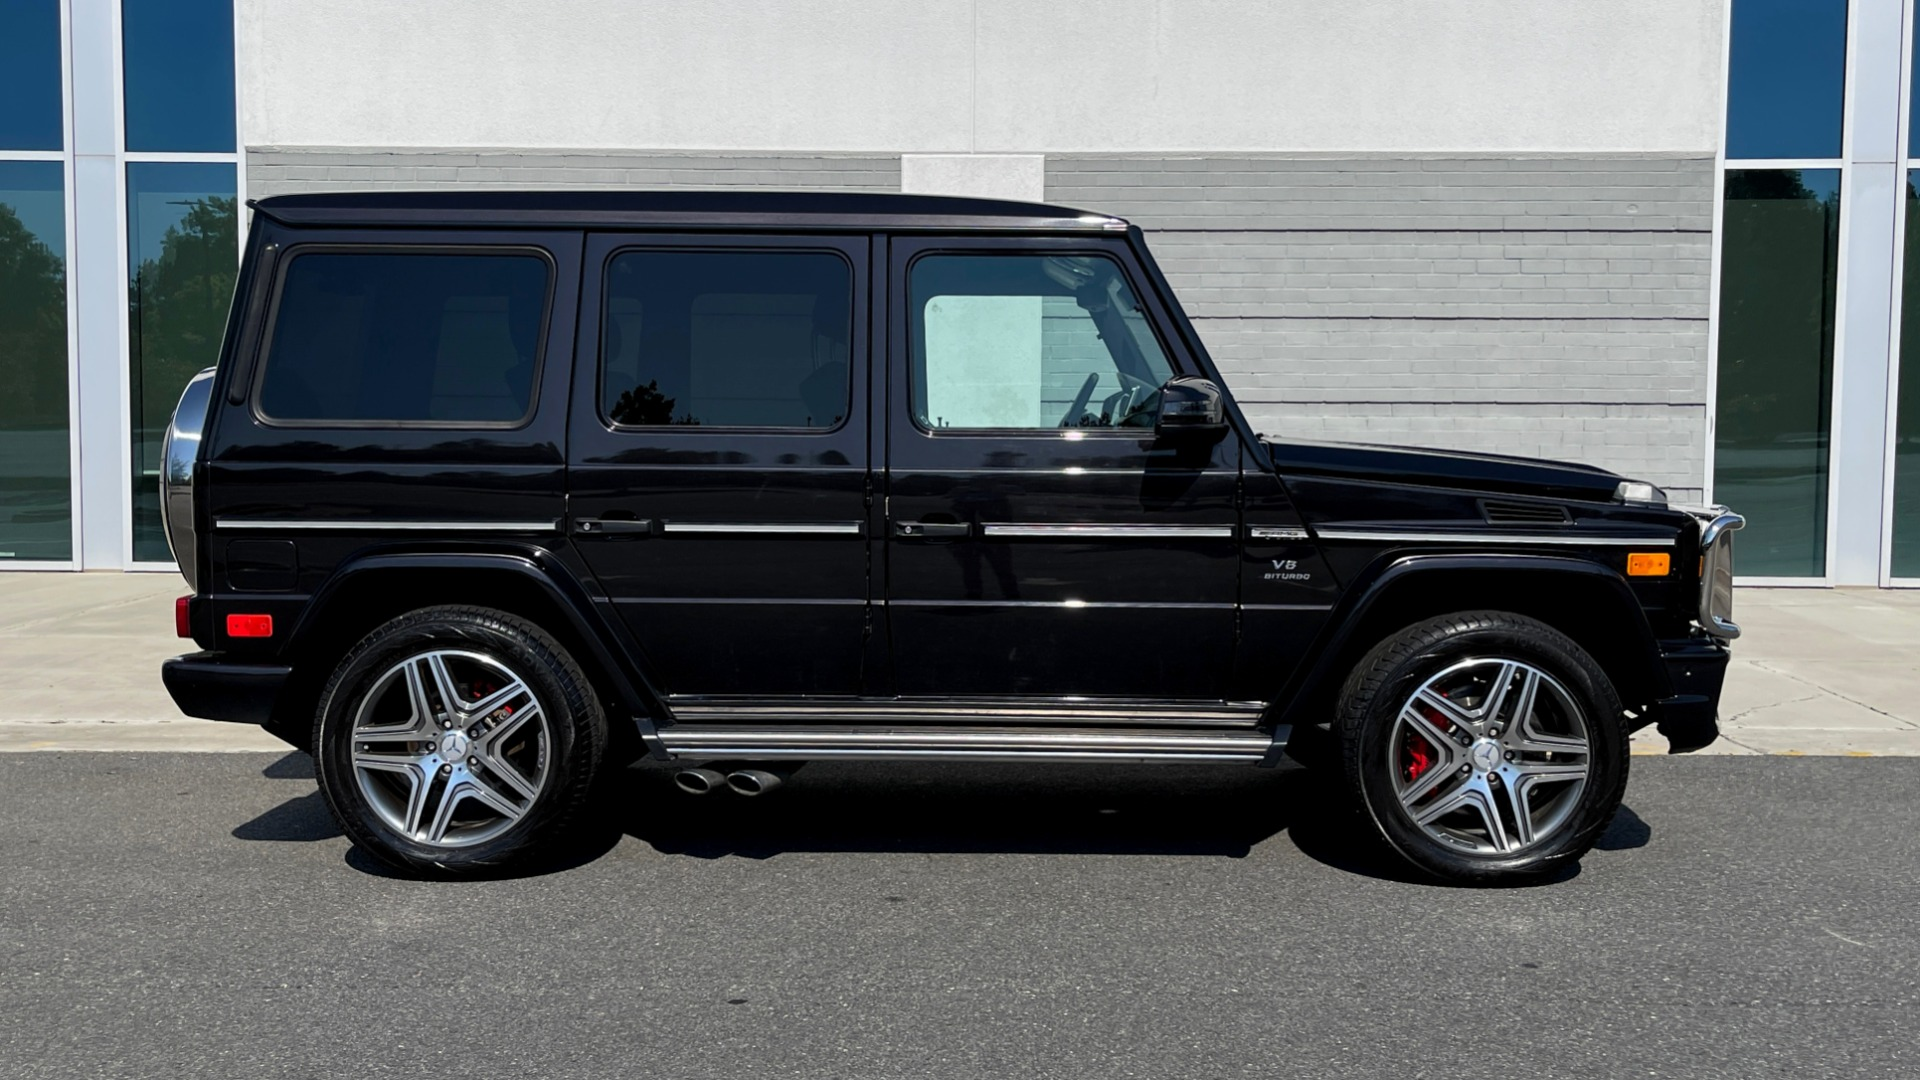 Used 2014 Mercedes-Benz G-CLASS G 63 AMG / DISGNO LEATHER / NAV / SUNROOF / REARVIEW for sale $88,999 at Formula Imports in Charlotte NC 28227 6